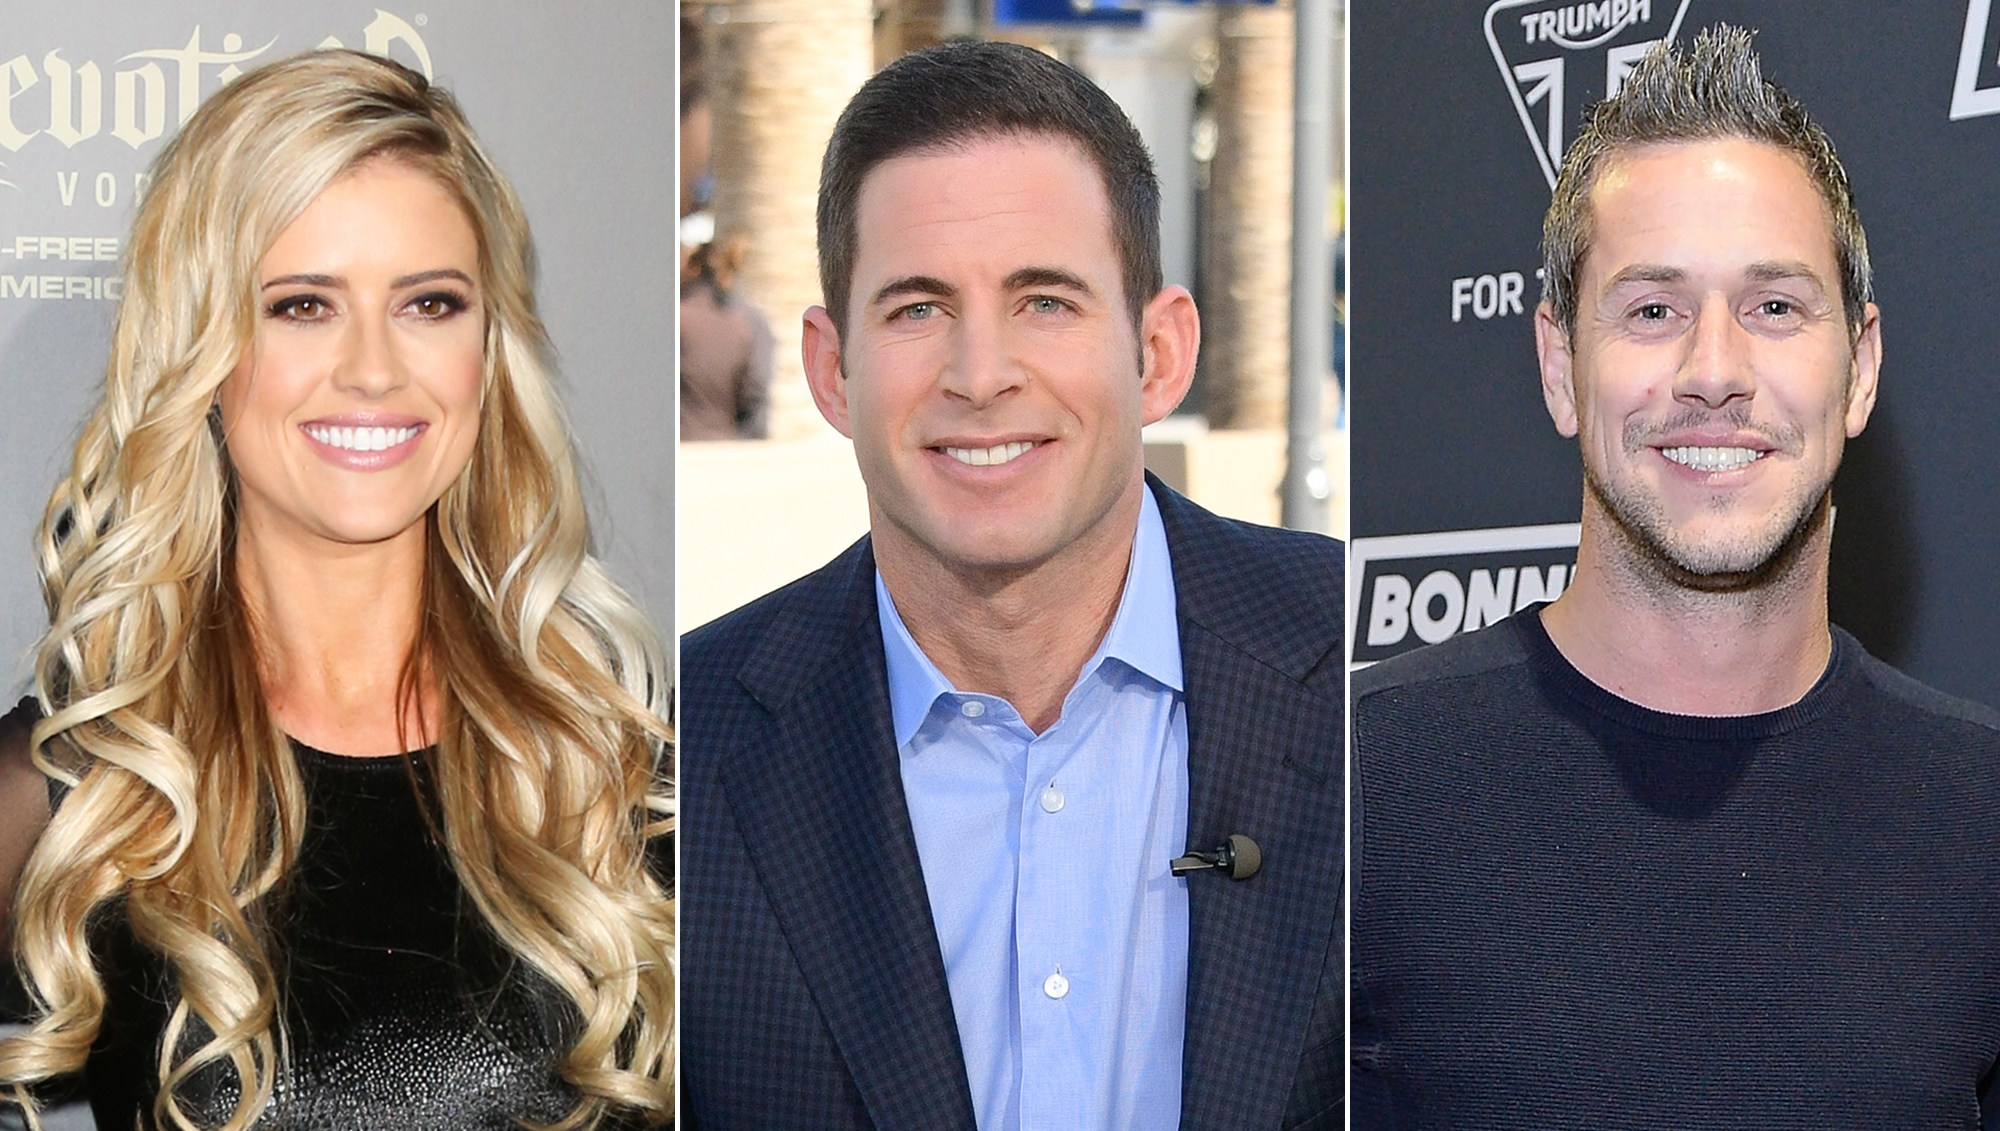 Tarek El Moussa Knows Christina and Ant Anstead's Baby Name